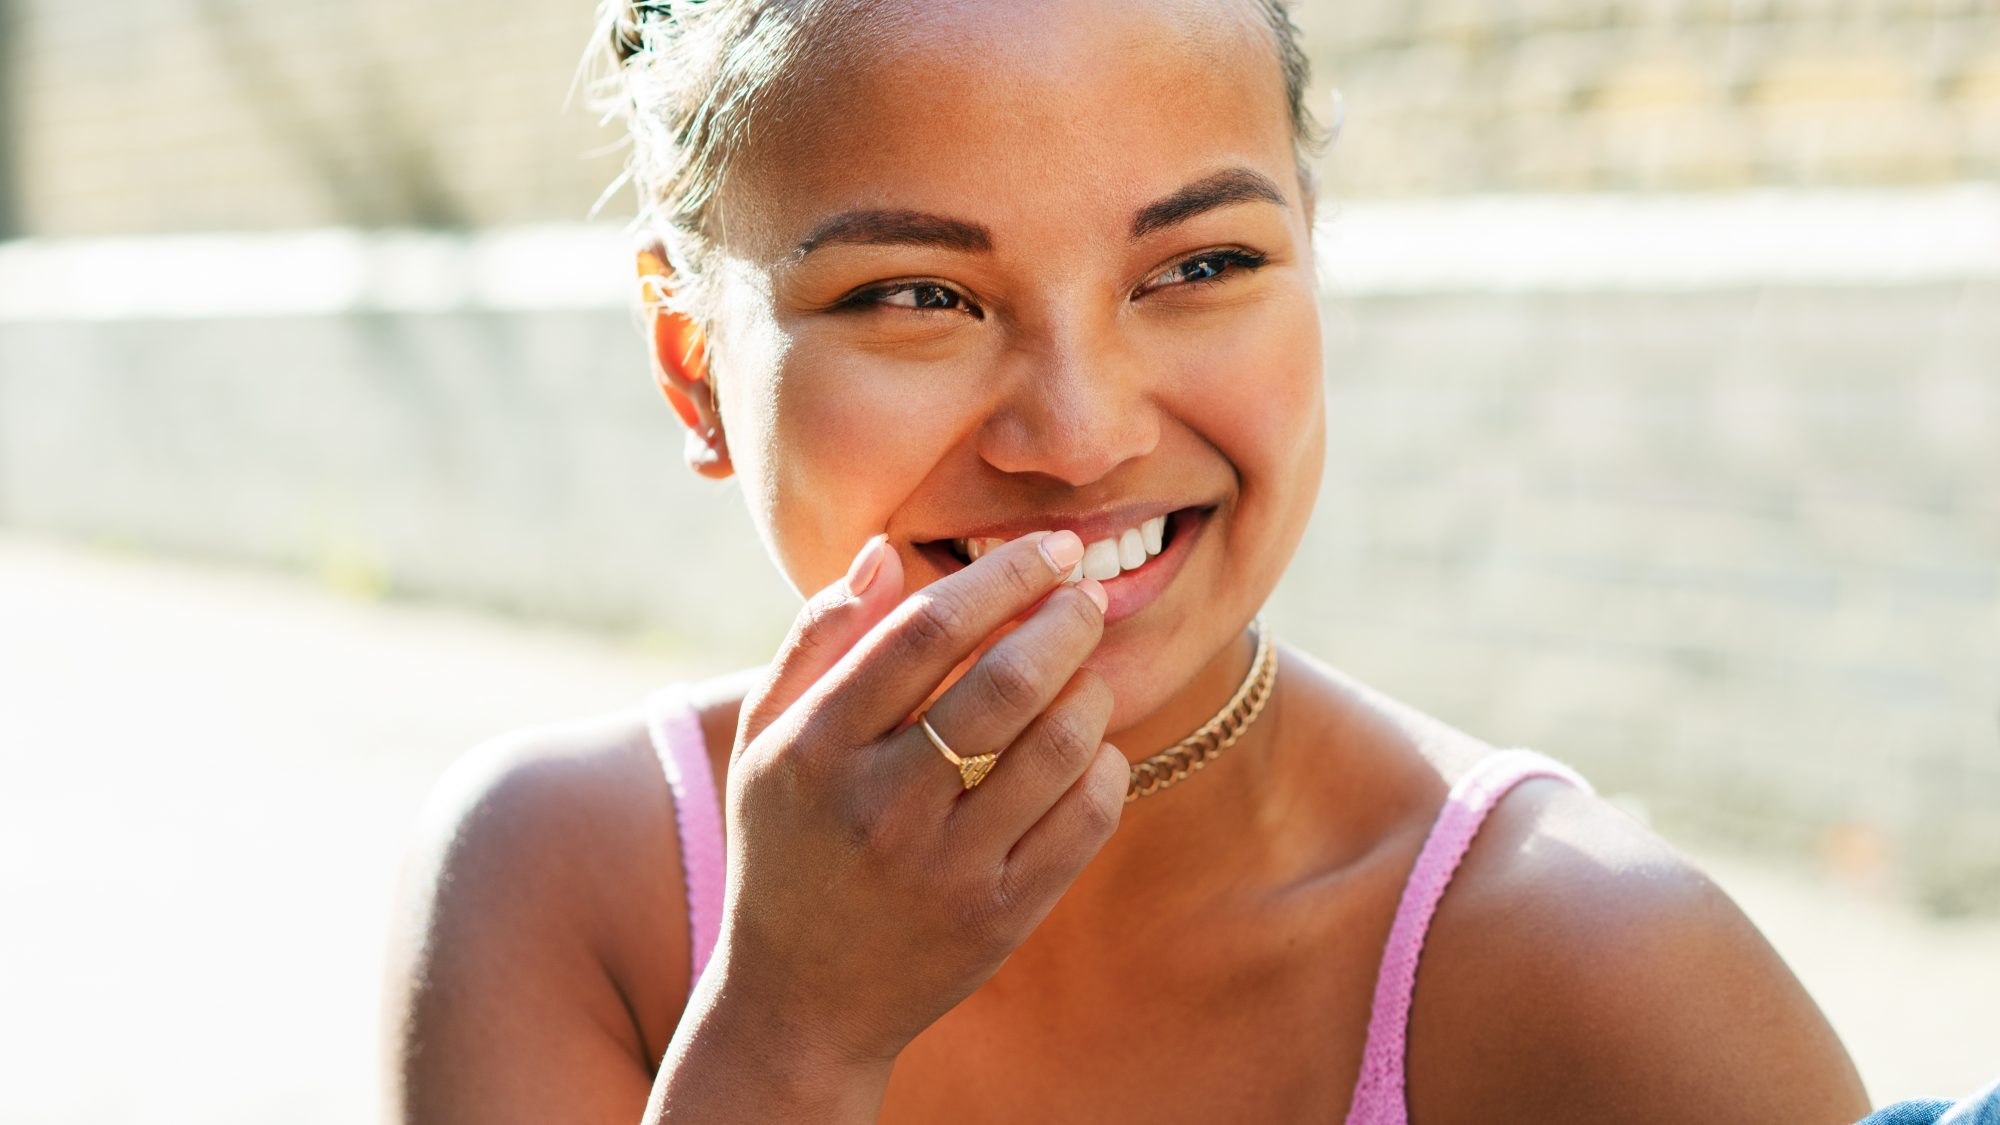 teeth-whitening-mistakes: woman with white teeth smiling